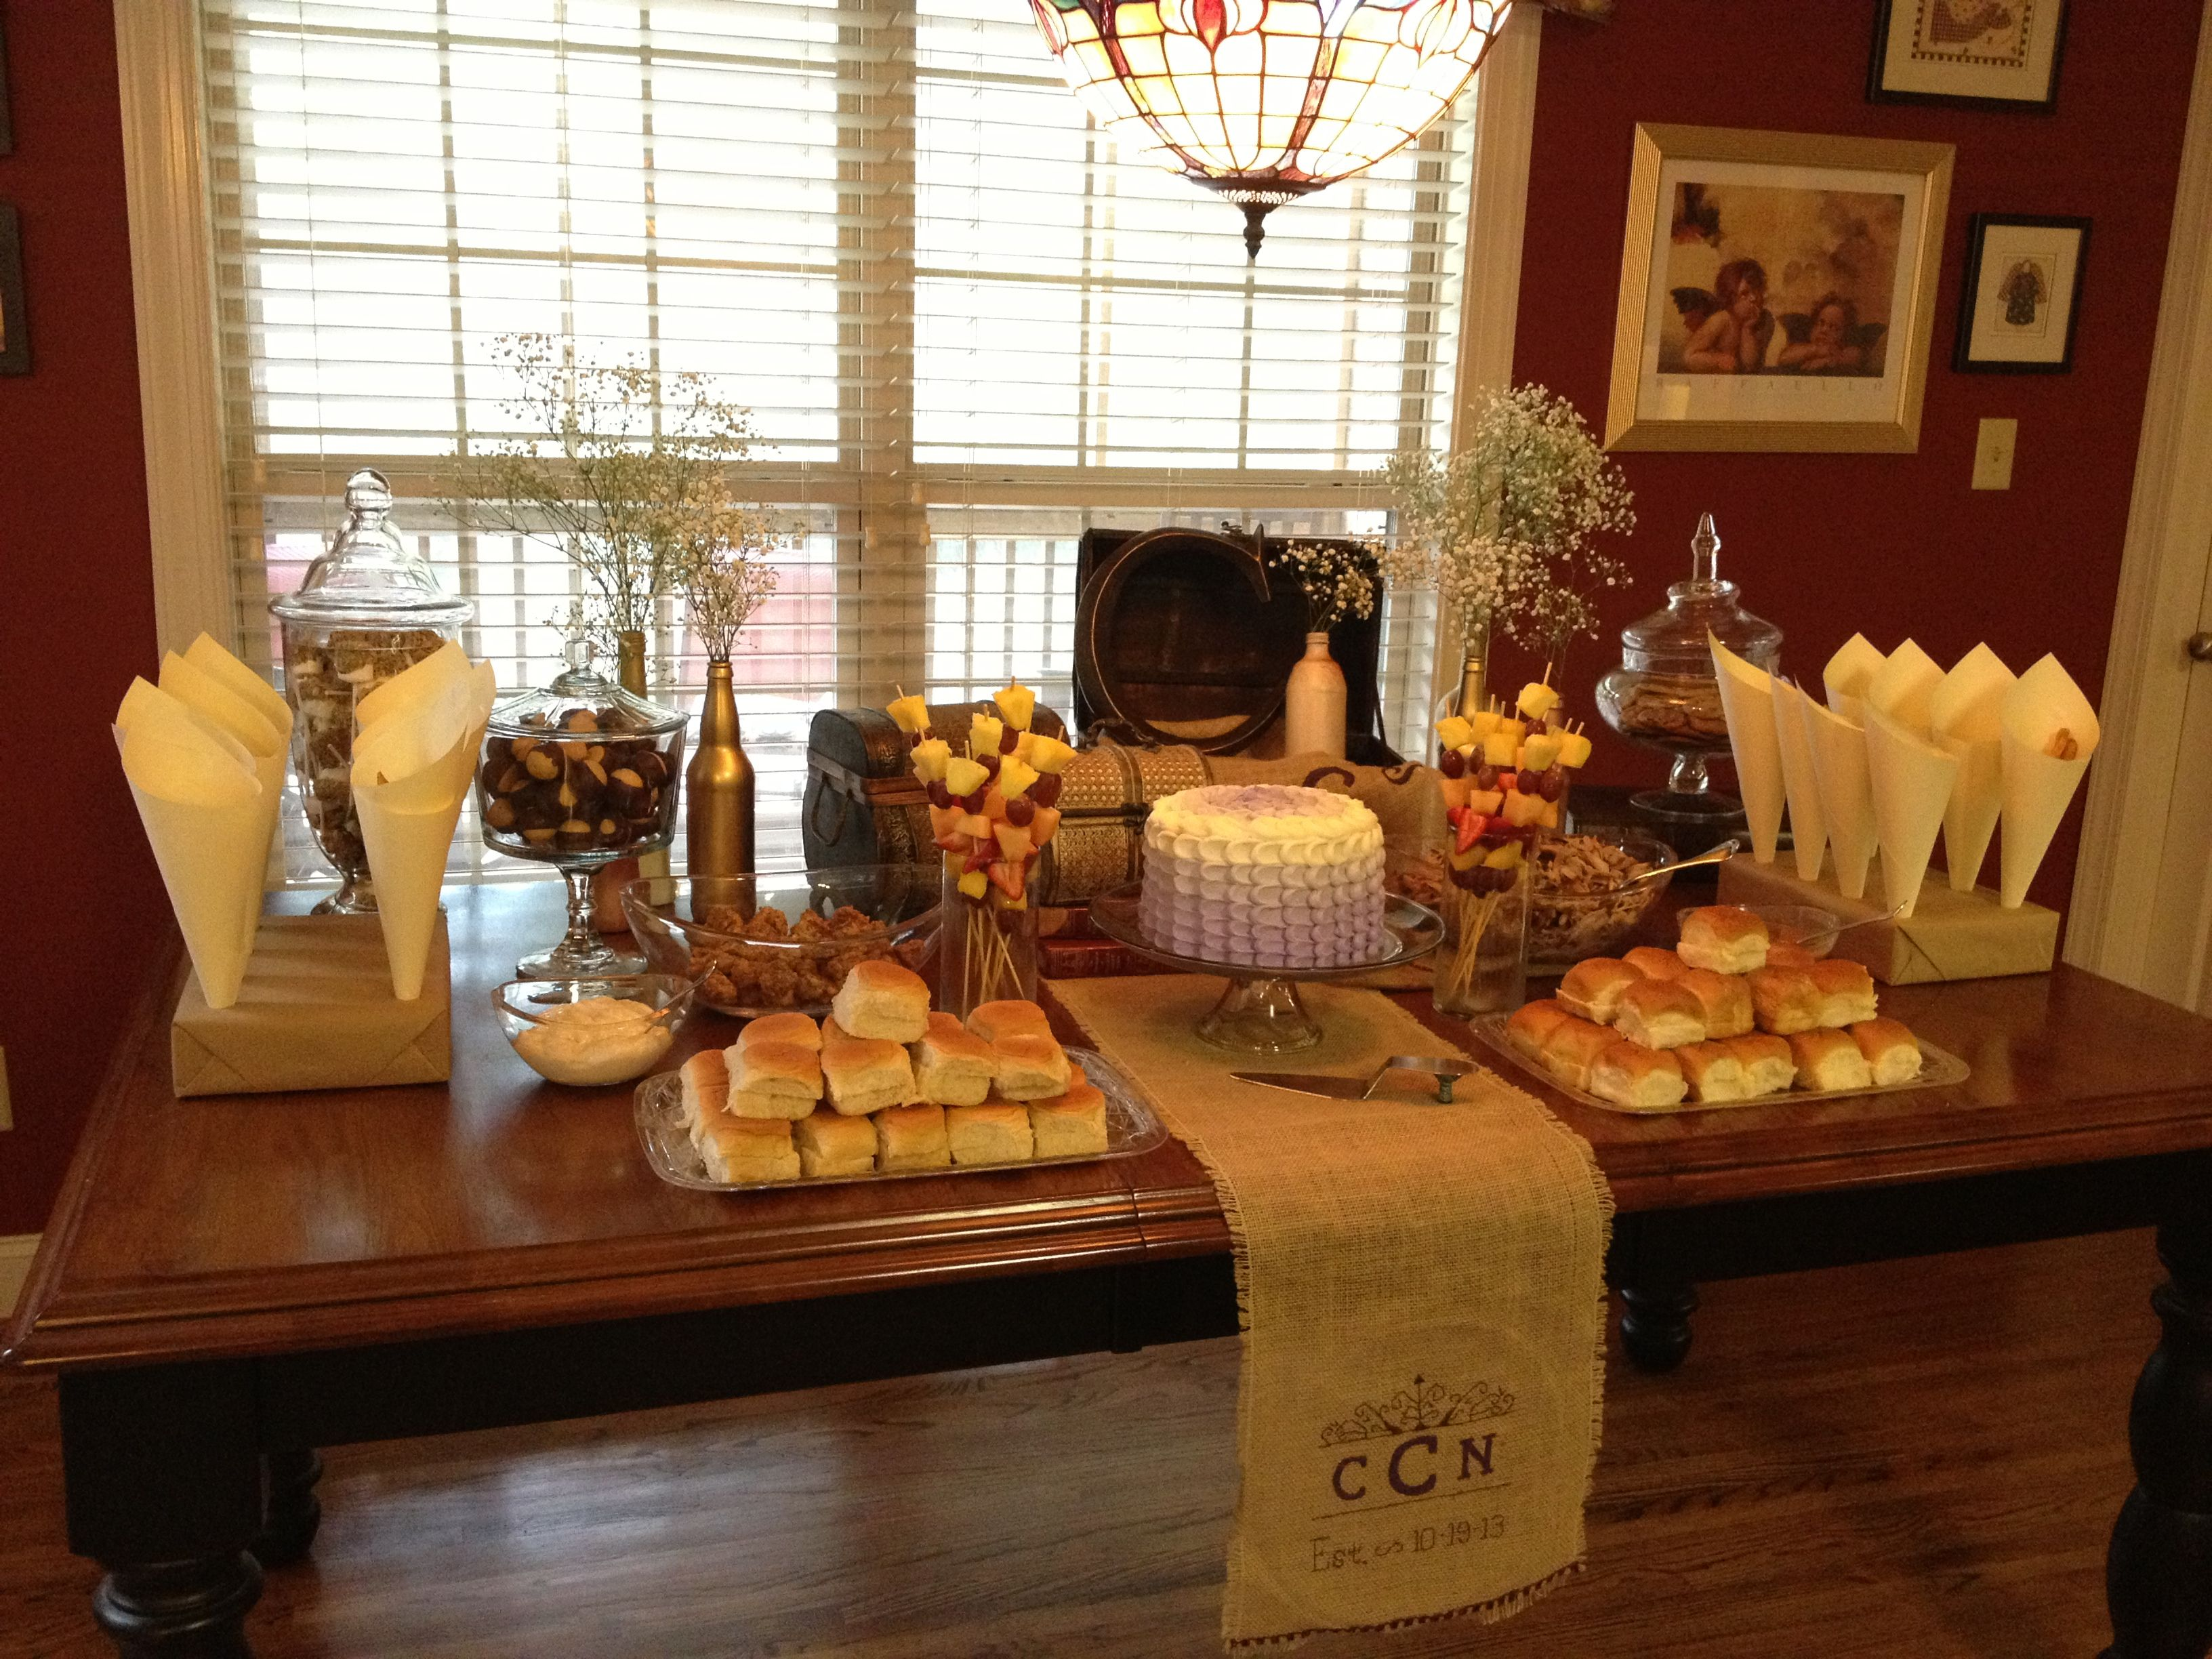 Food table display at a couple's shower or bridal shower